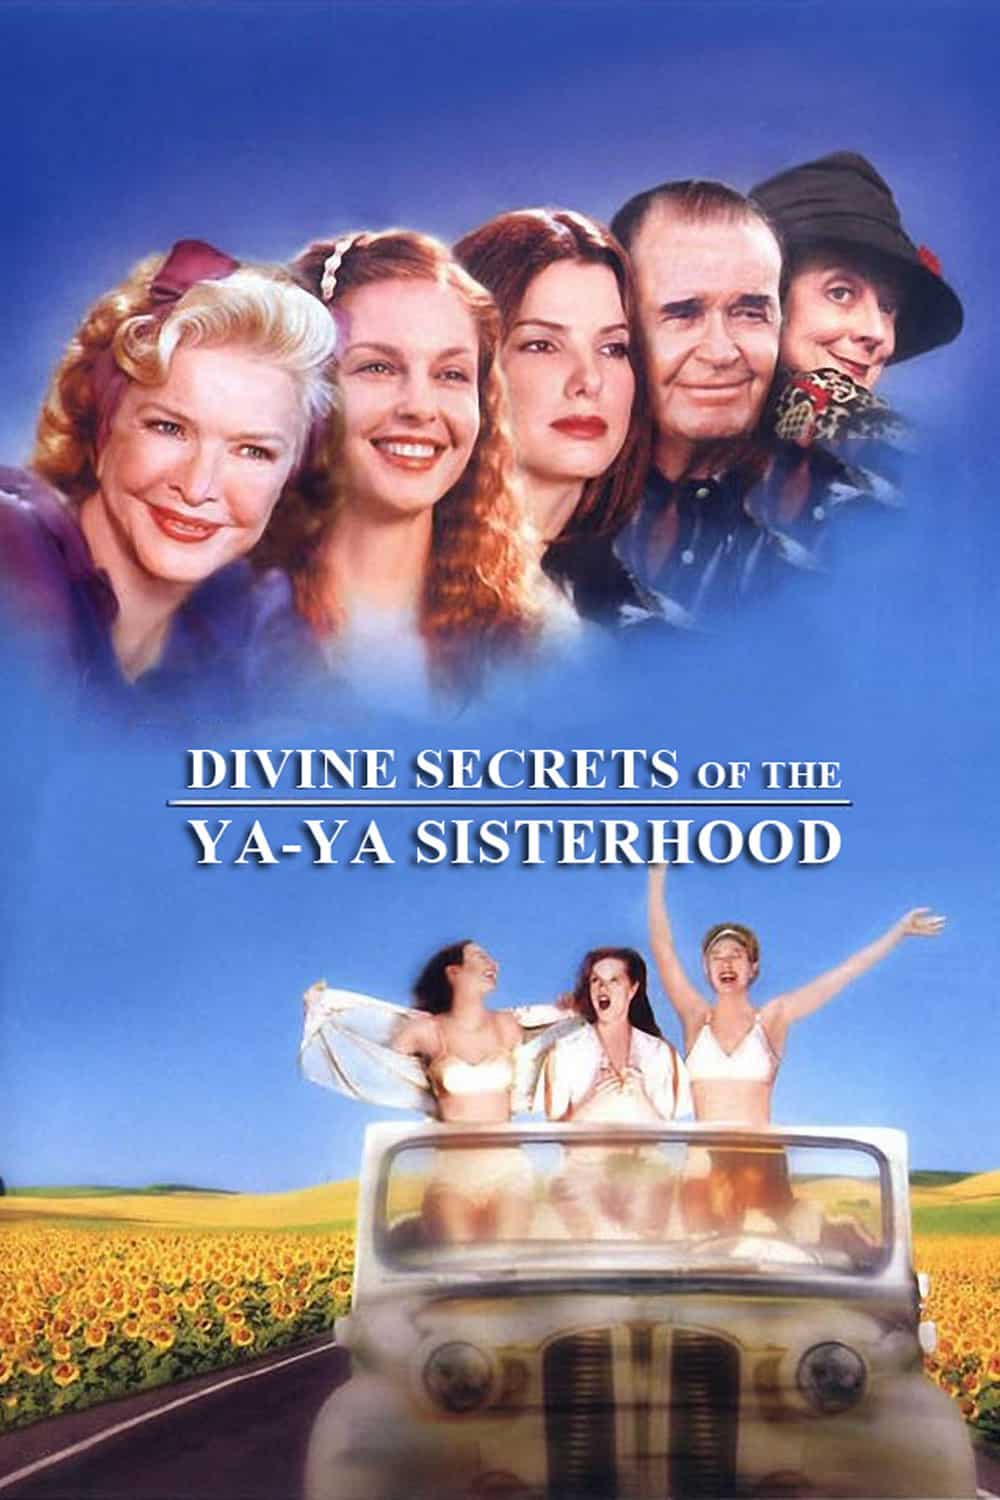 Divine Secrets of the Ya-Ya Sisterhood, 2002